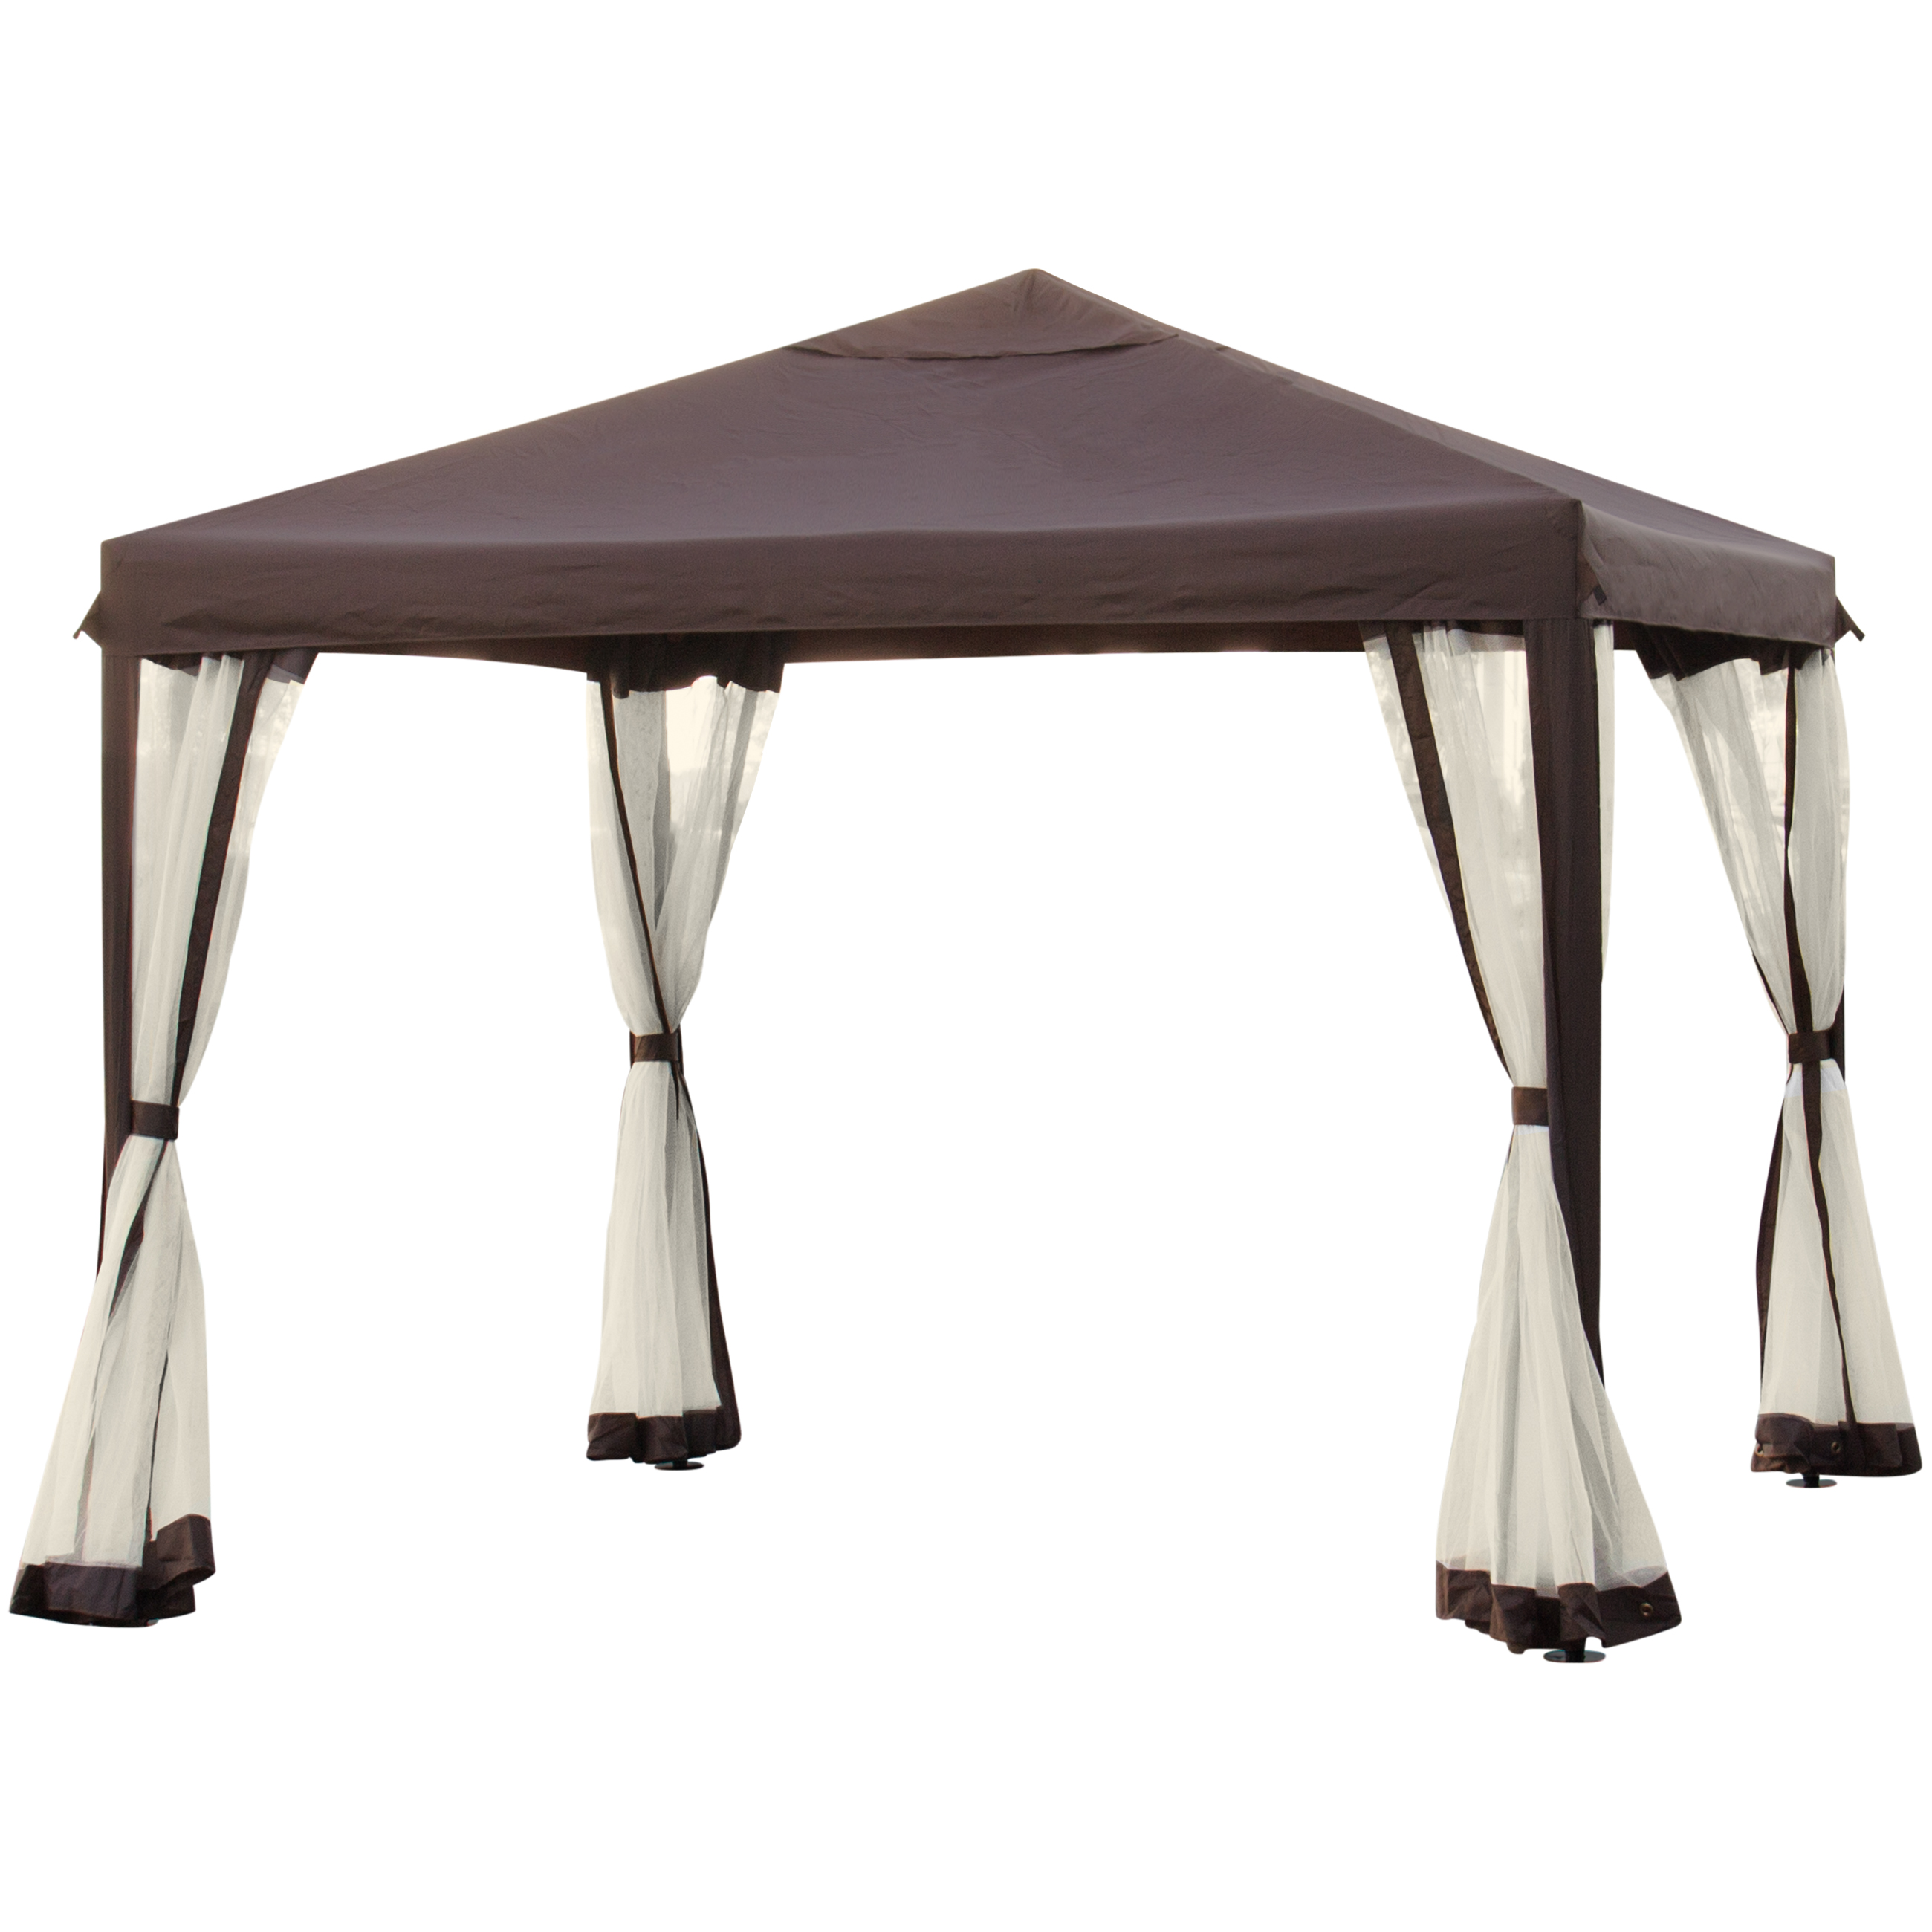 Best Choice Products 10x10ft Outdoor Garden Patio Canopy Gazebo W/ Fully  Enclosed Mesh Insect Screen